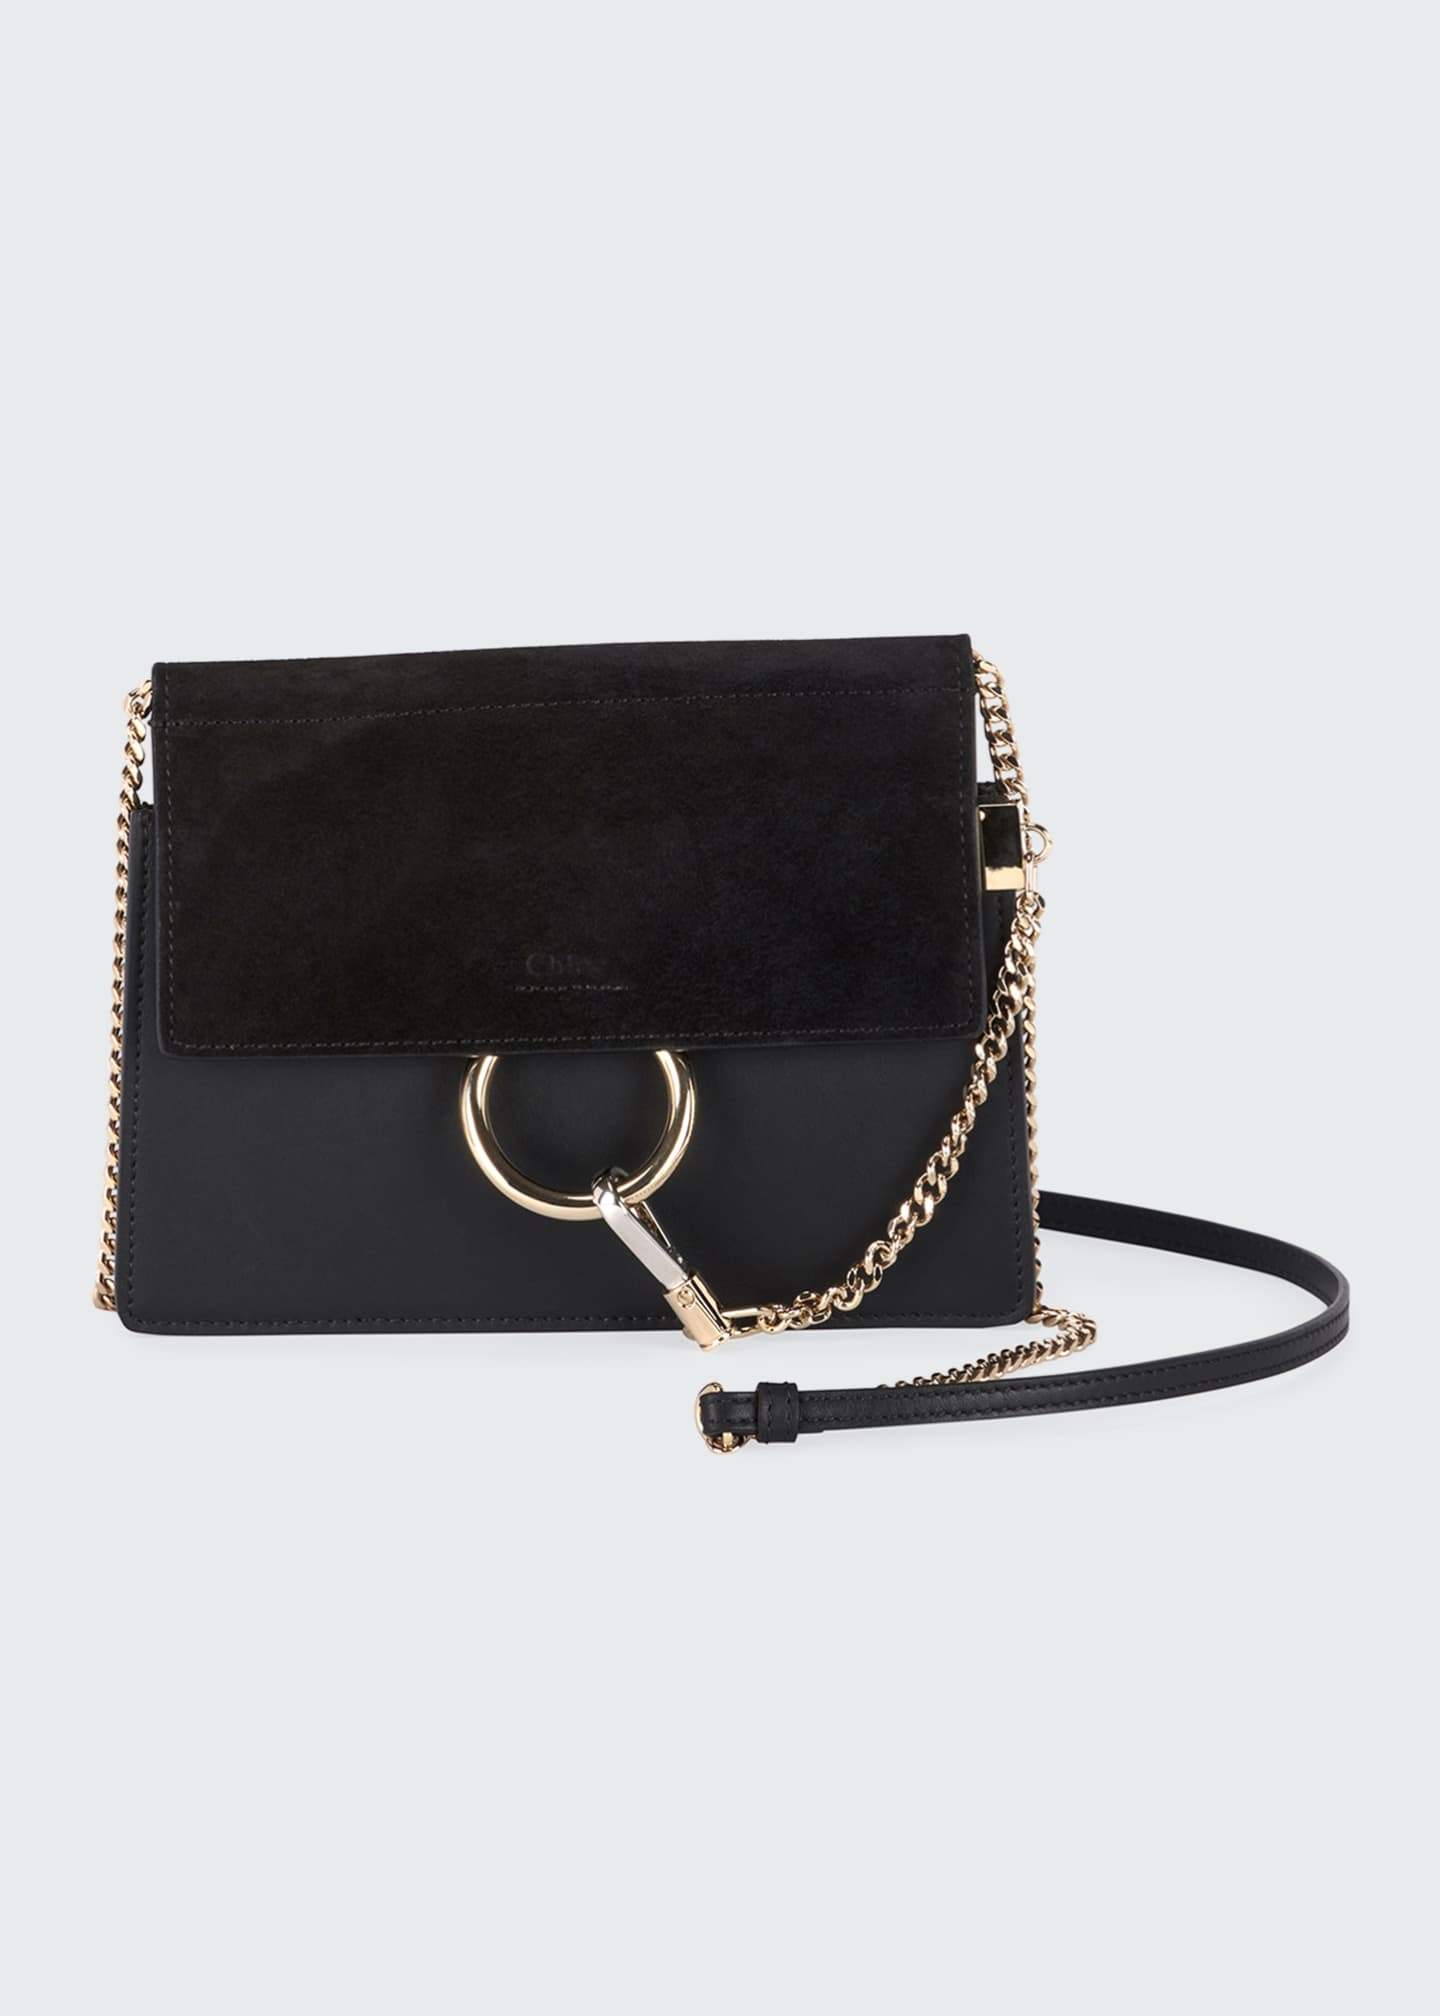 Chloe Faye Mini Chain Crossbody Bag